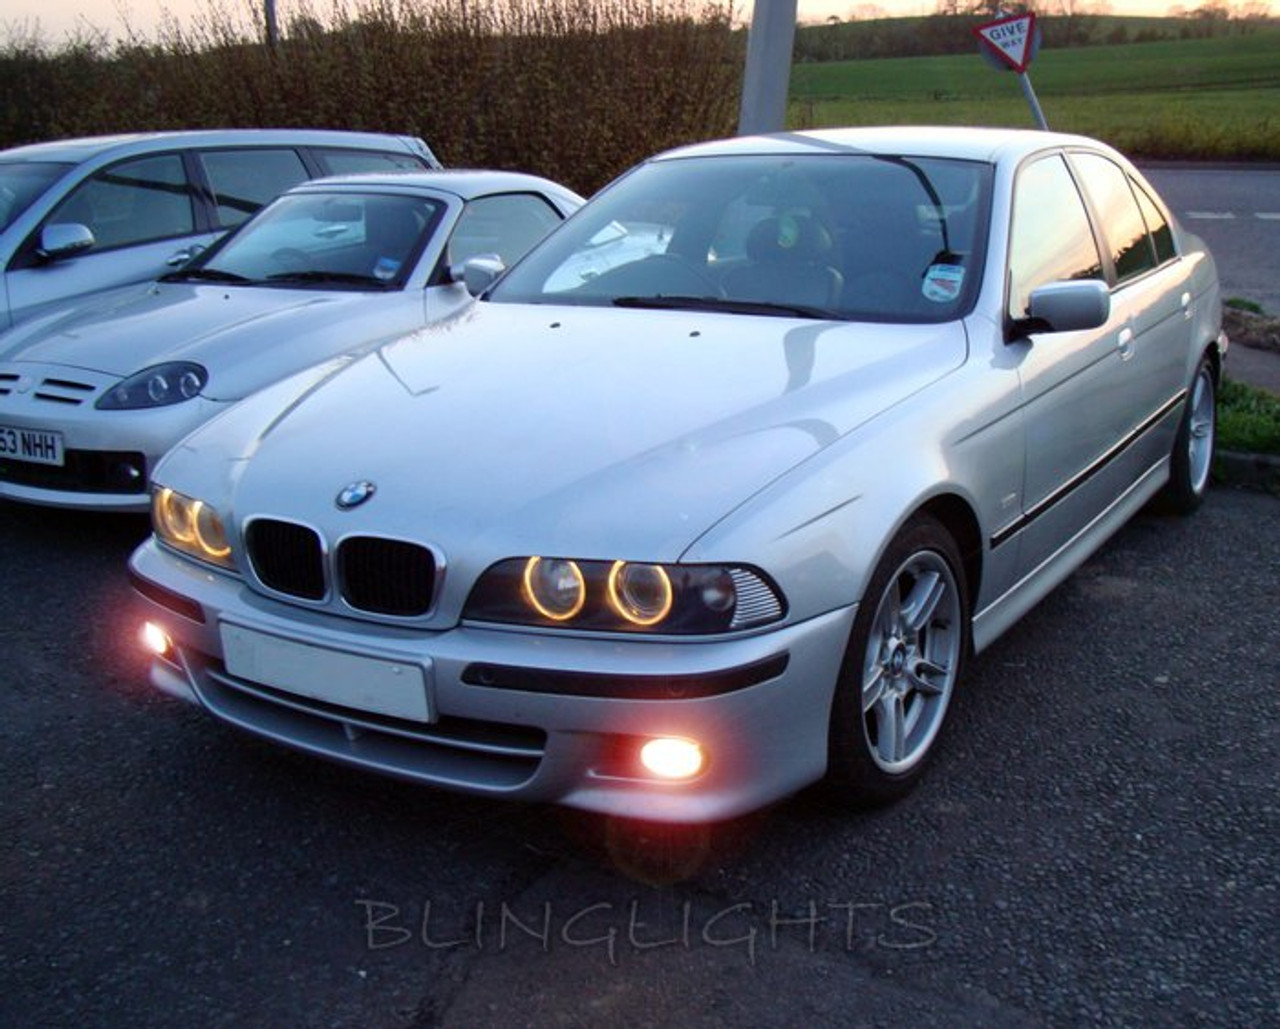 2000 2001 2002 2003 Bmw 5 Series E39 M Sport Xenon Fog Lamps Driving Lights Foglamps Foglights Kit Blinglights Com